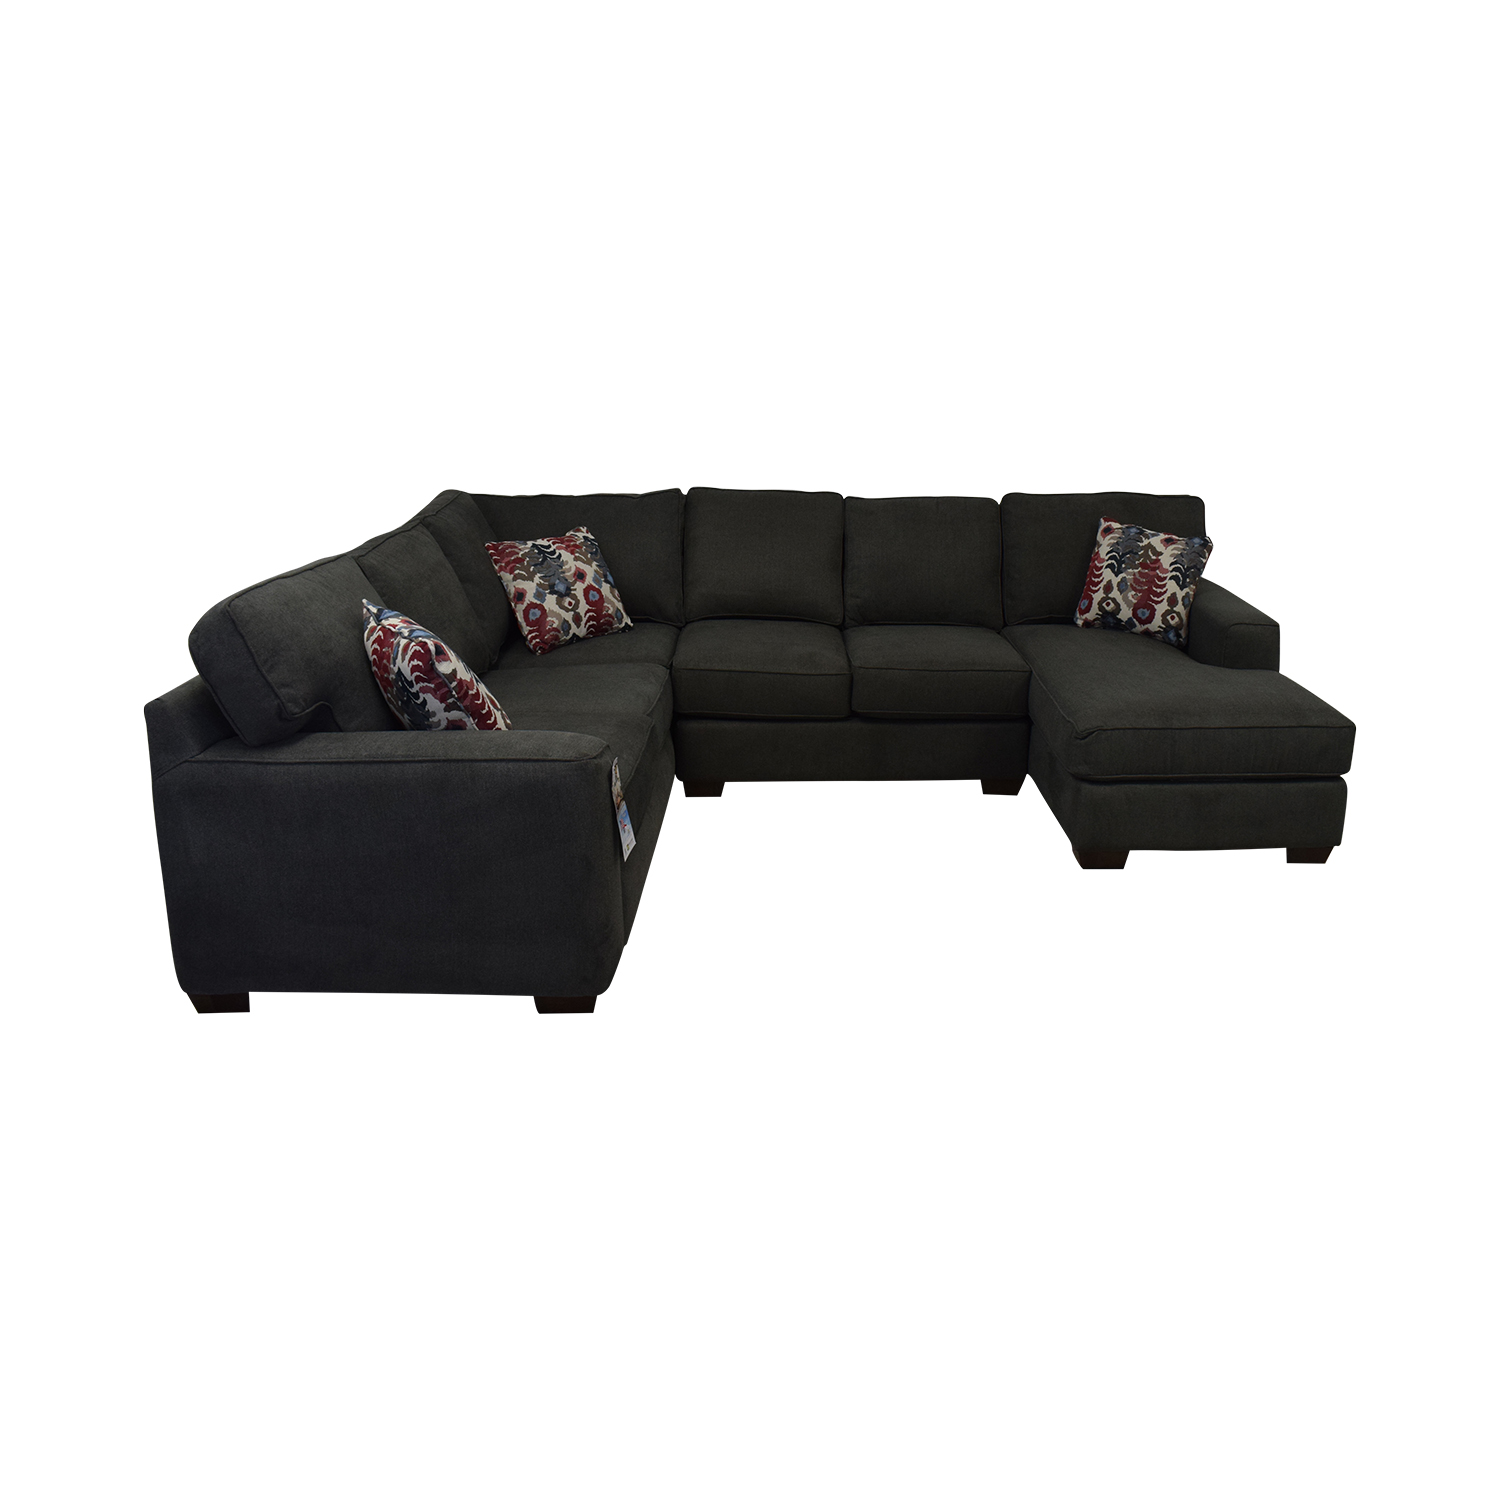 42% OFF - Klaussner Klaussner Abbott Three-Piece Chaise Sectional ...